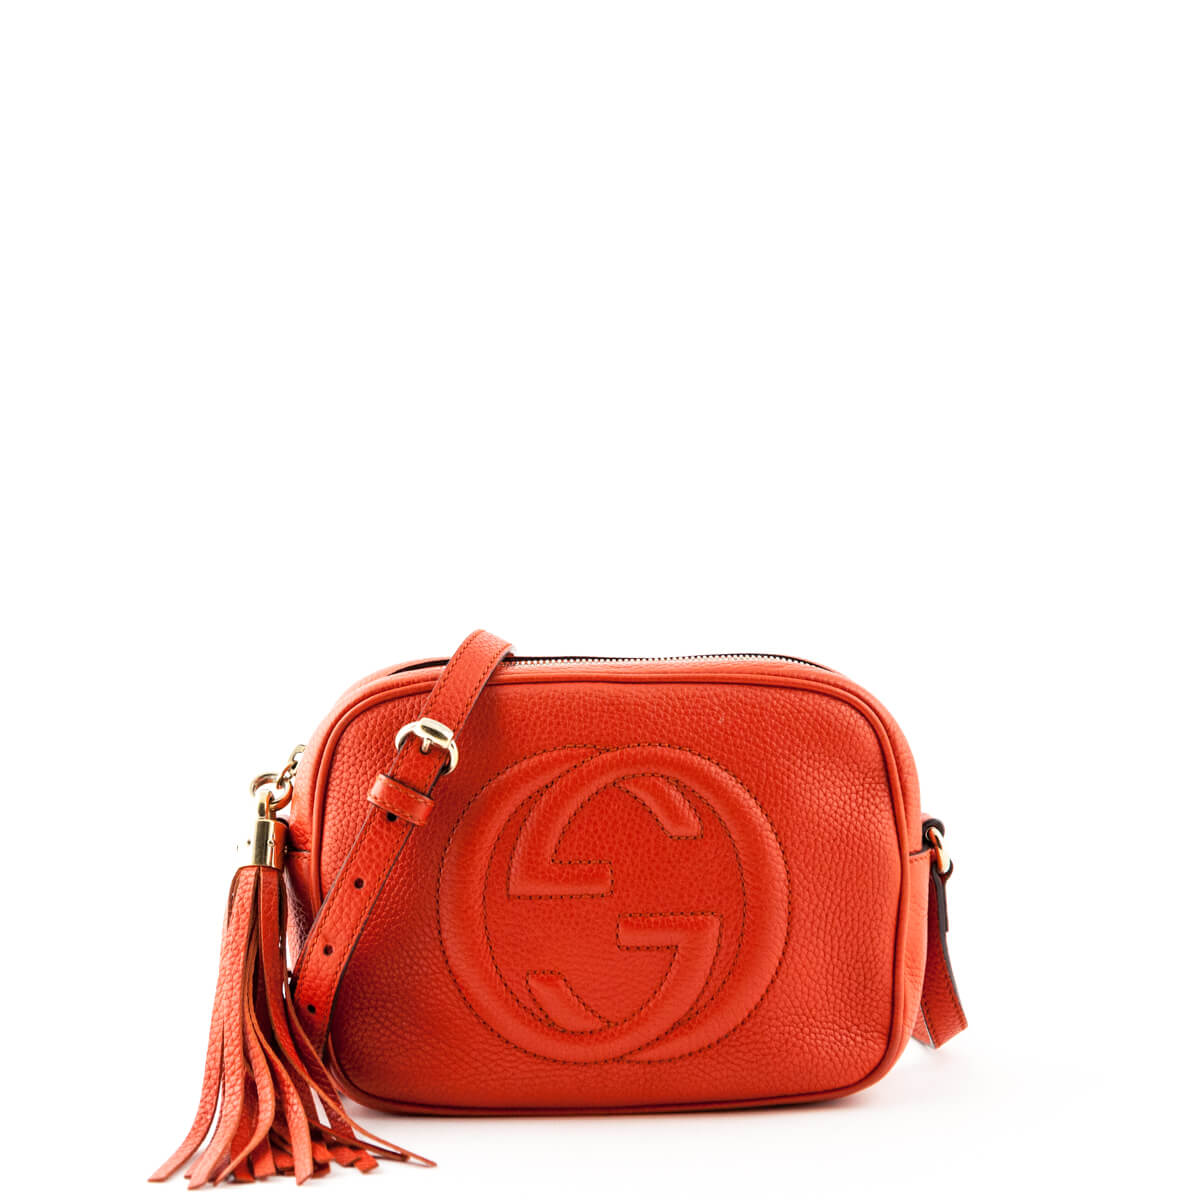 b47208ad1394 Gucci Orange Soho Disco - LOVE that BAG - Preowned Authentic Designer  Handbags ...